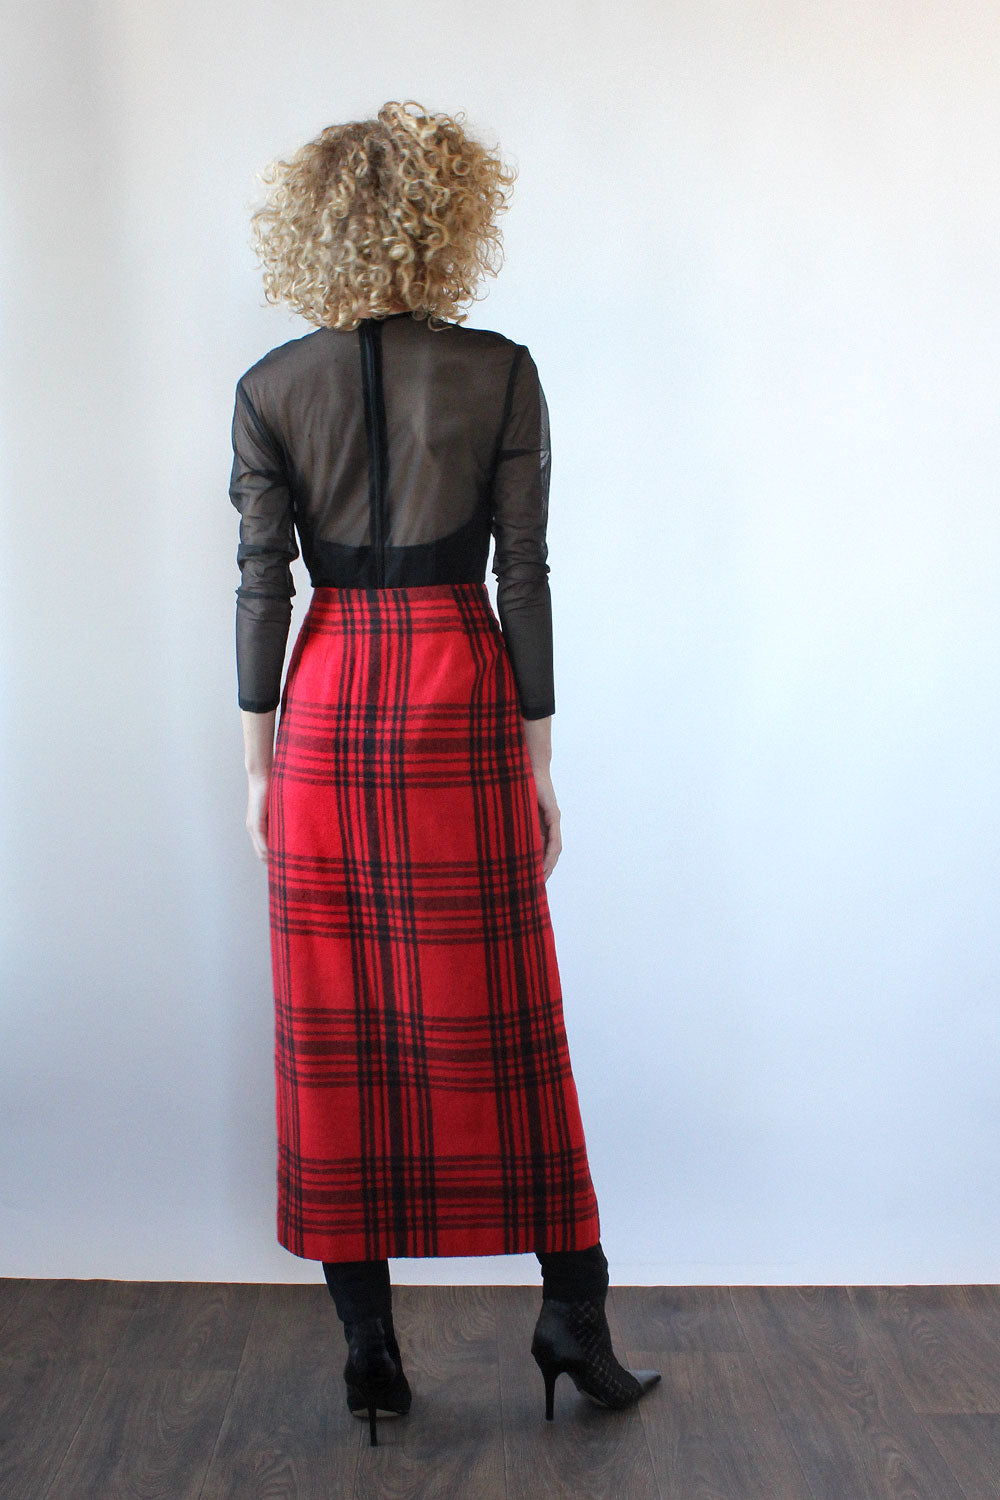 Cozy Plaid Blanket Skirt M/L